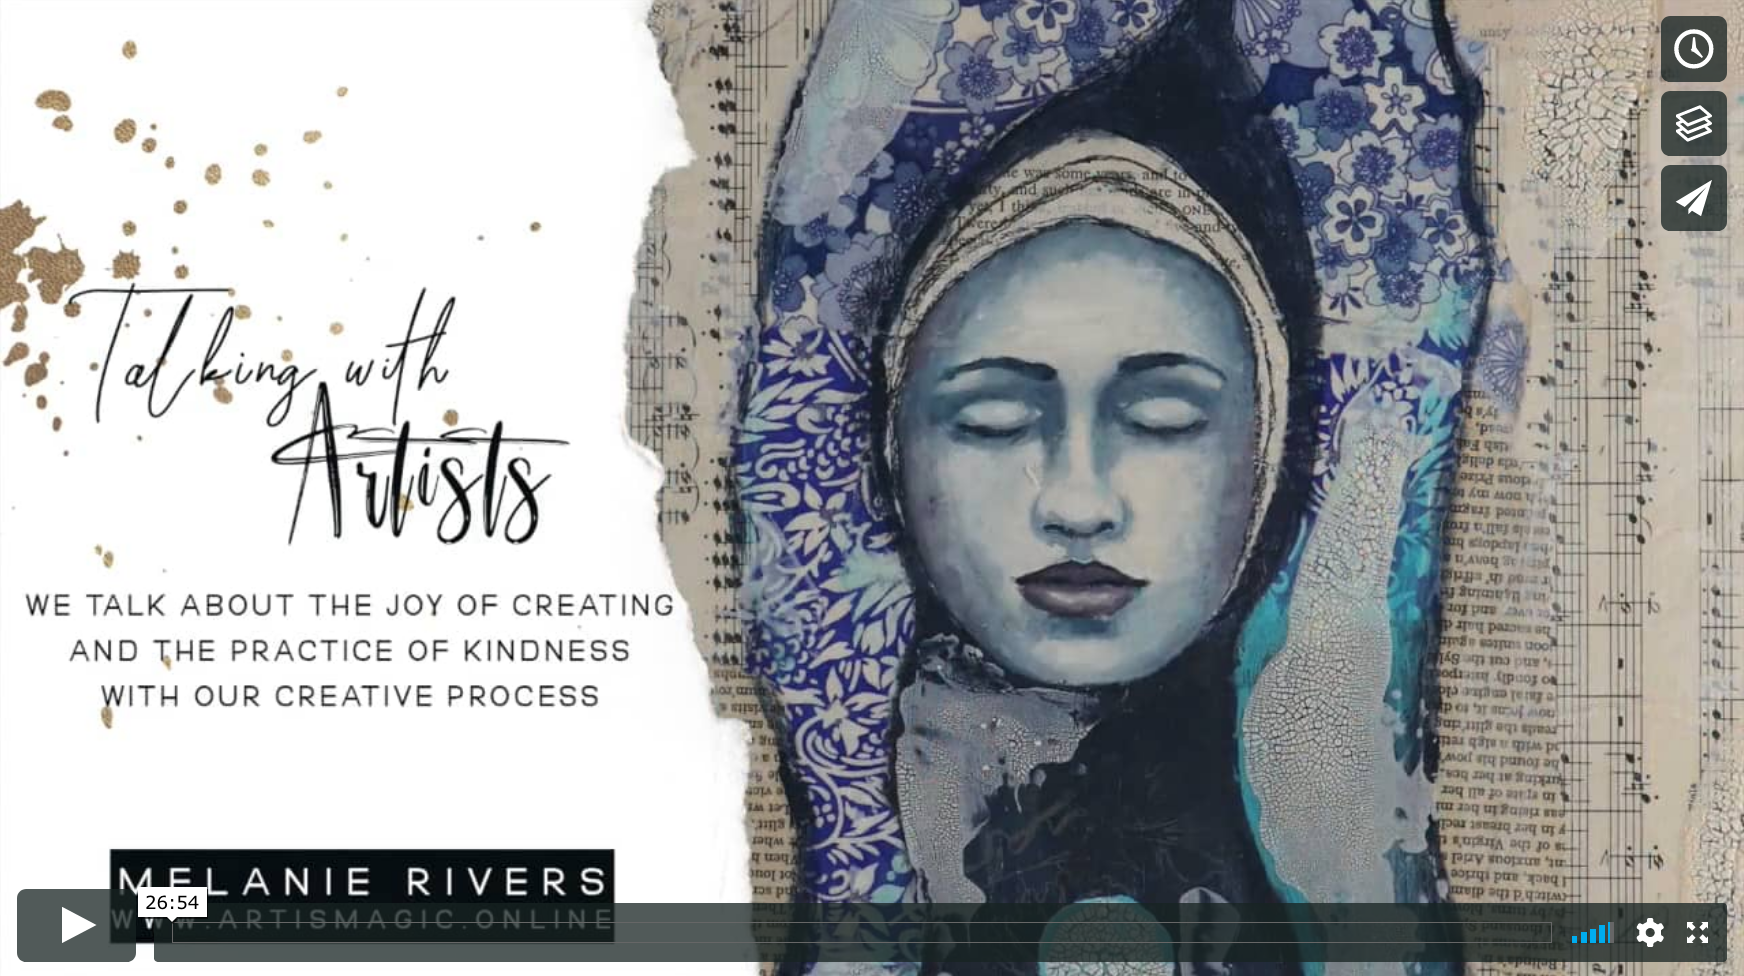 Talking with Artists Melanie Rivers